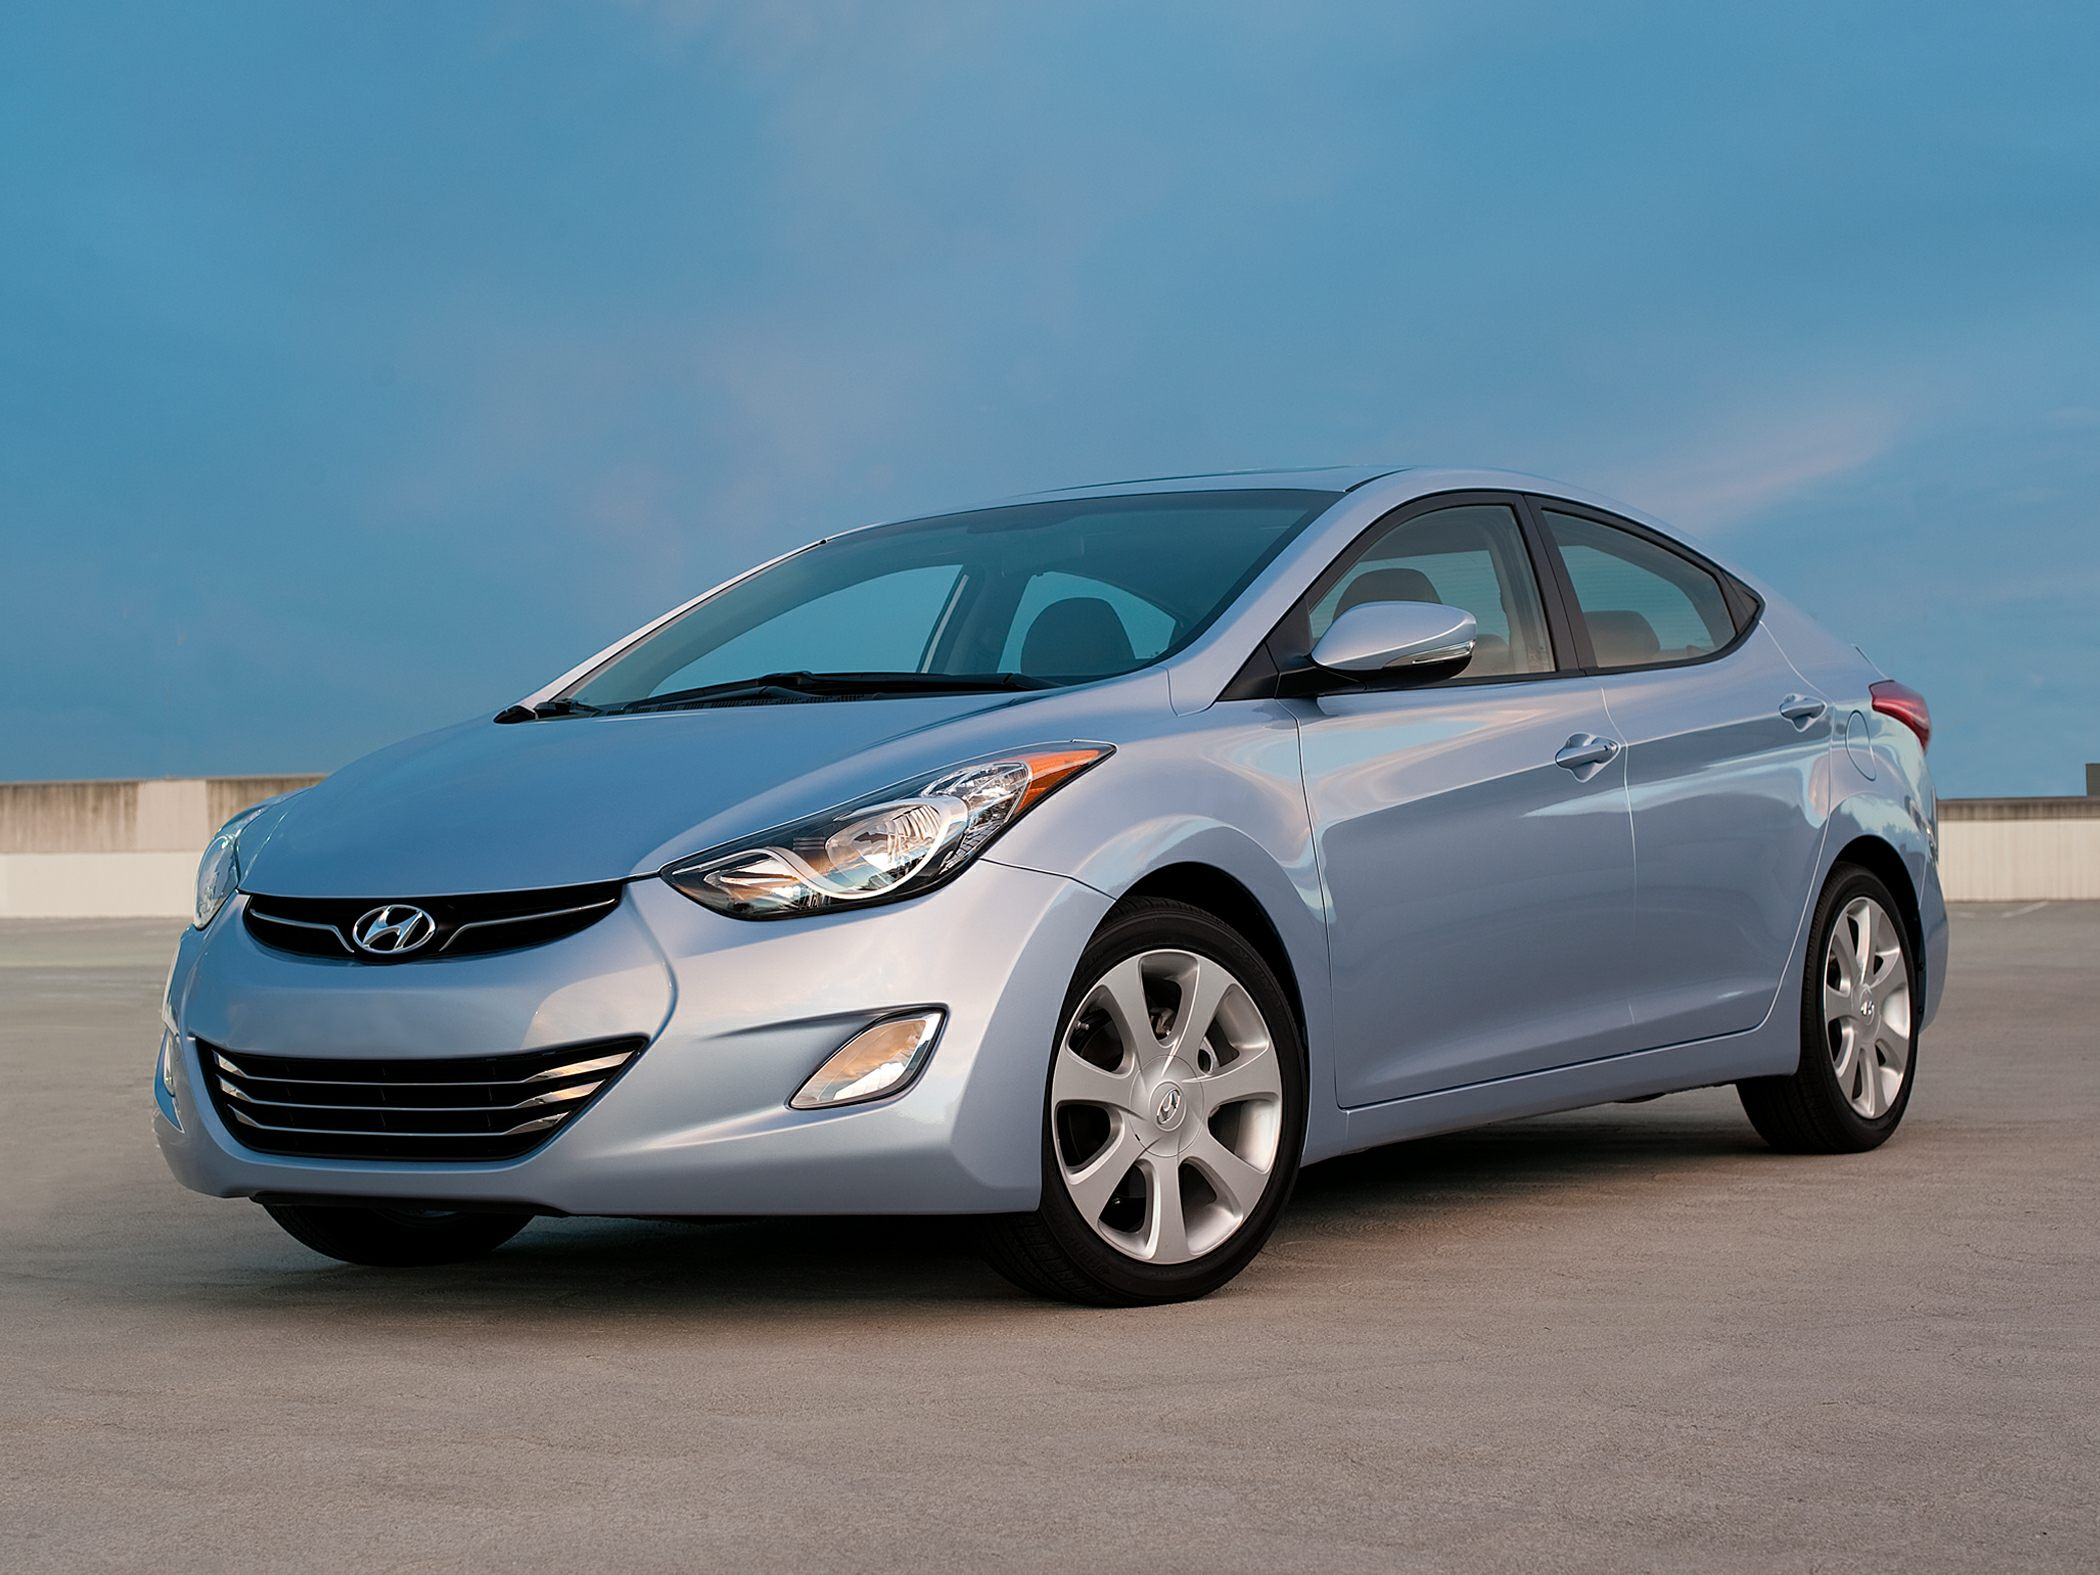 2012 Hyundai Elantra Limited Only one owner Perfect car for todays economy New Arrival This 201